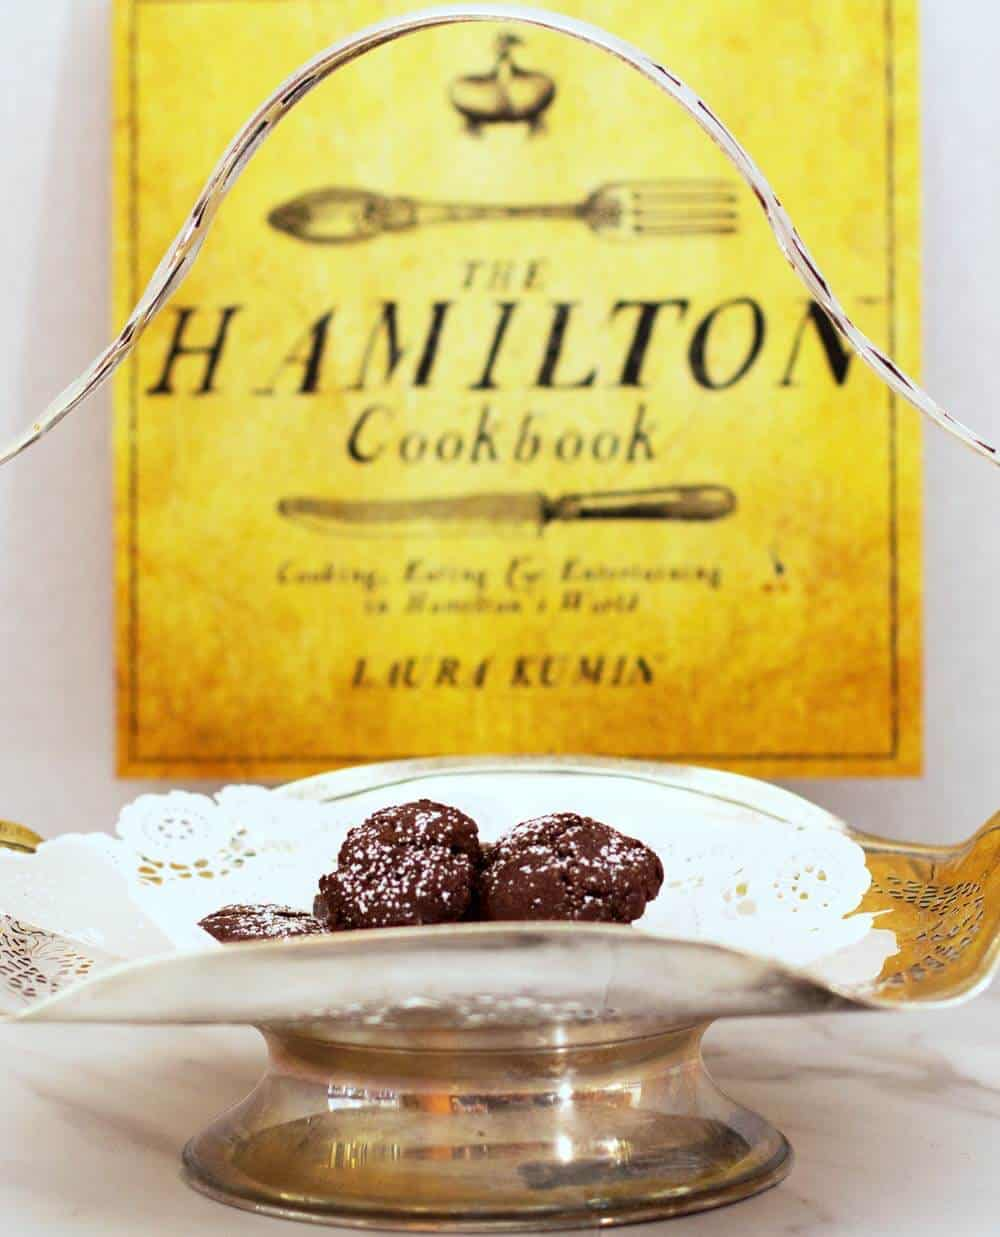 The Hamilton Cookbook with 18th Century Crispy Intensely Chocolate Cookies